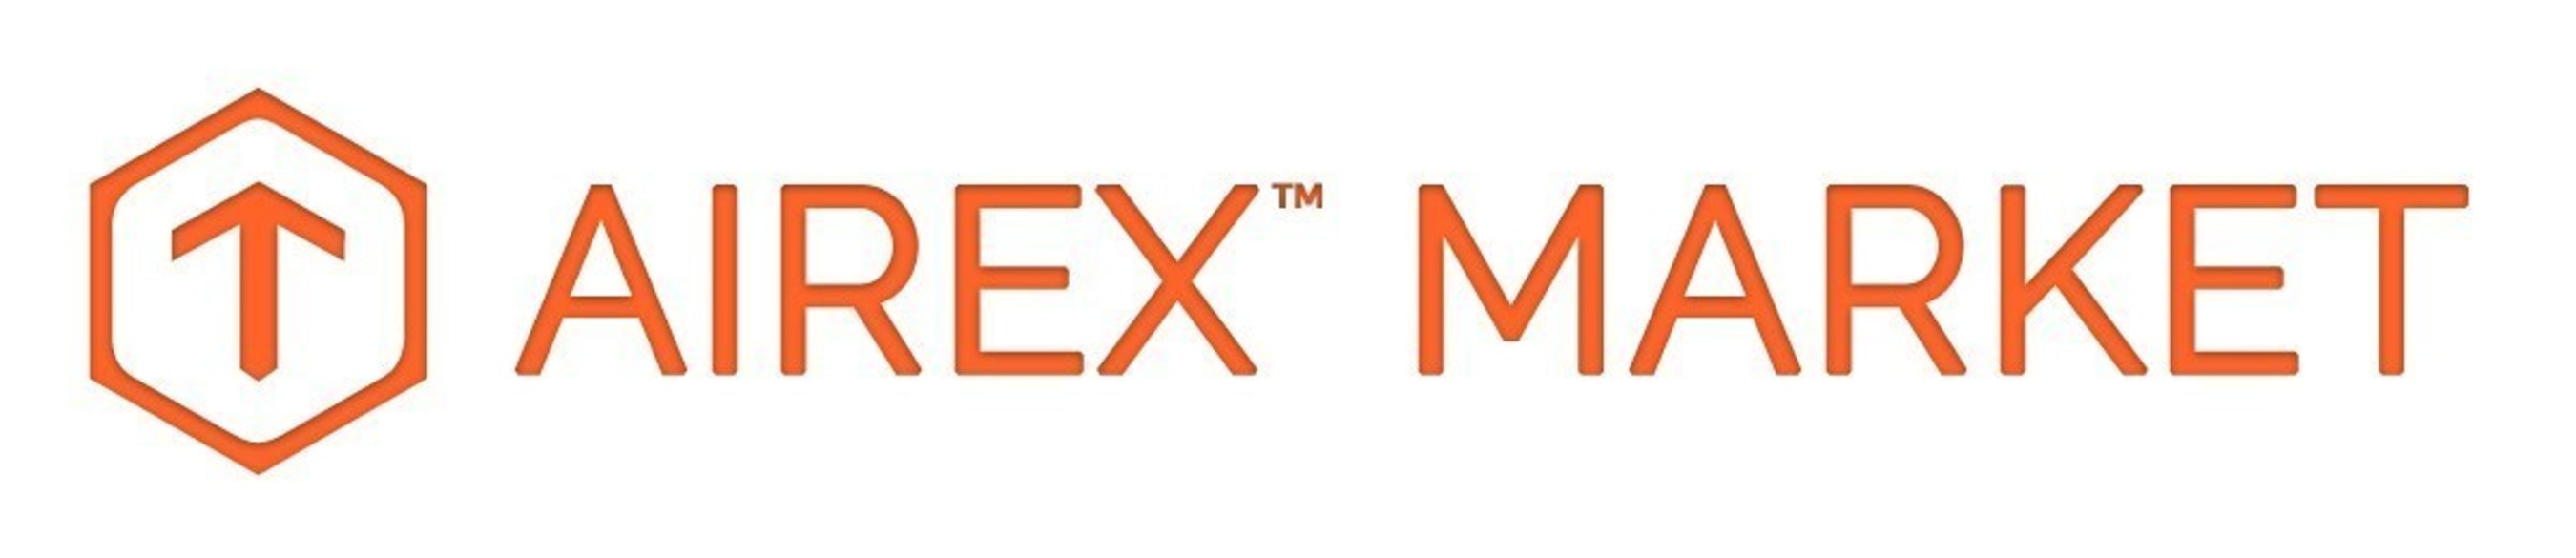 Airex, Inc. Adds Three New Partners to the AIREX™ Markets